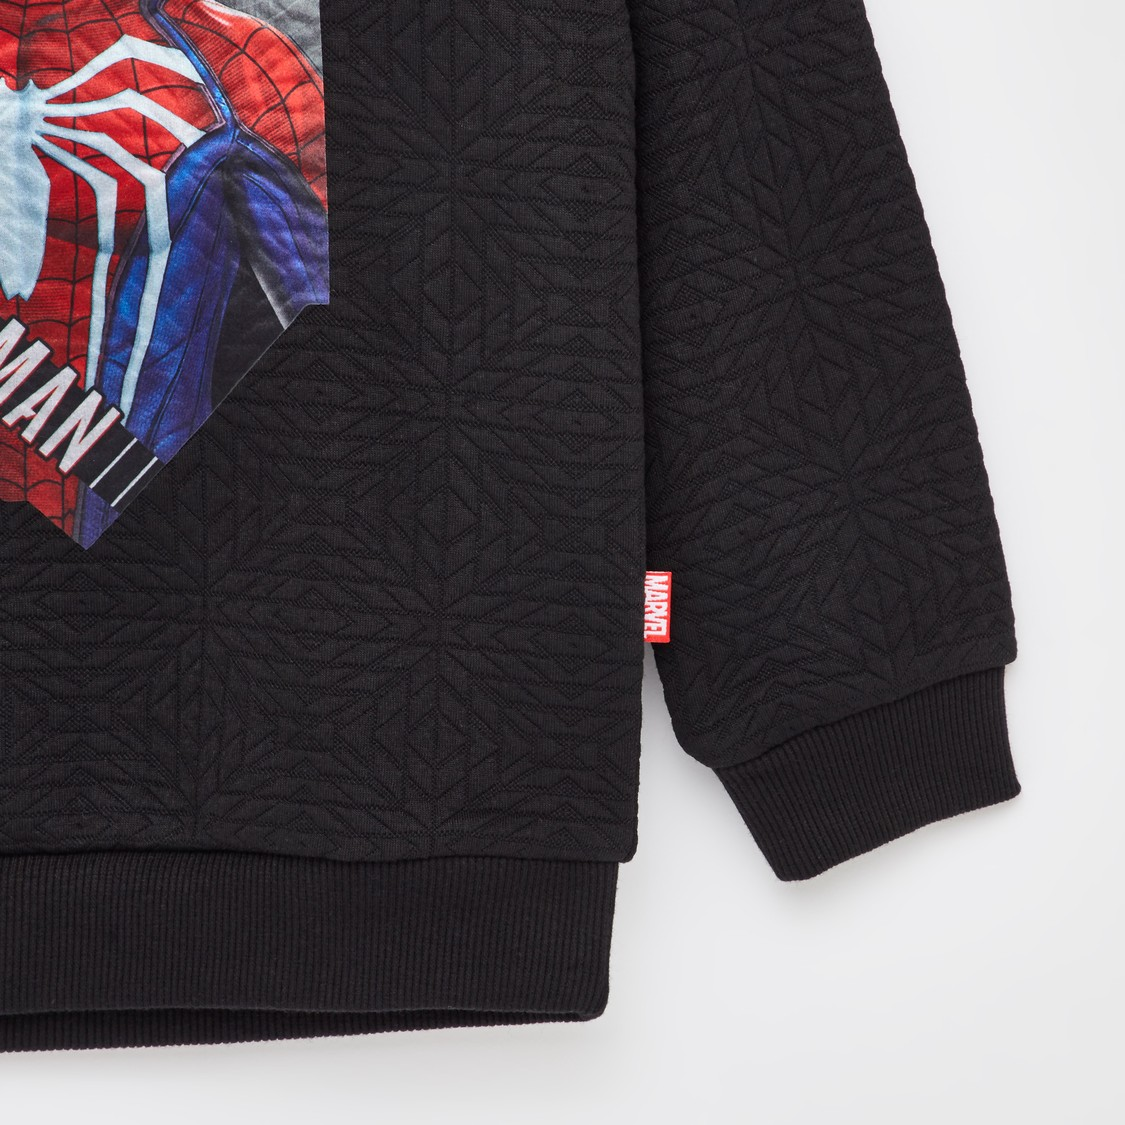 Spider-Man Print Round Neck Sweatshirt with Long Sleeves